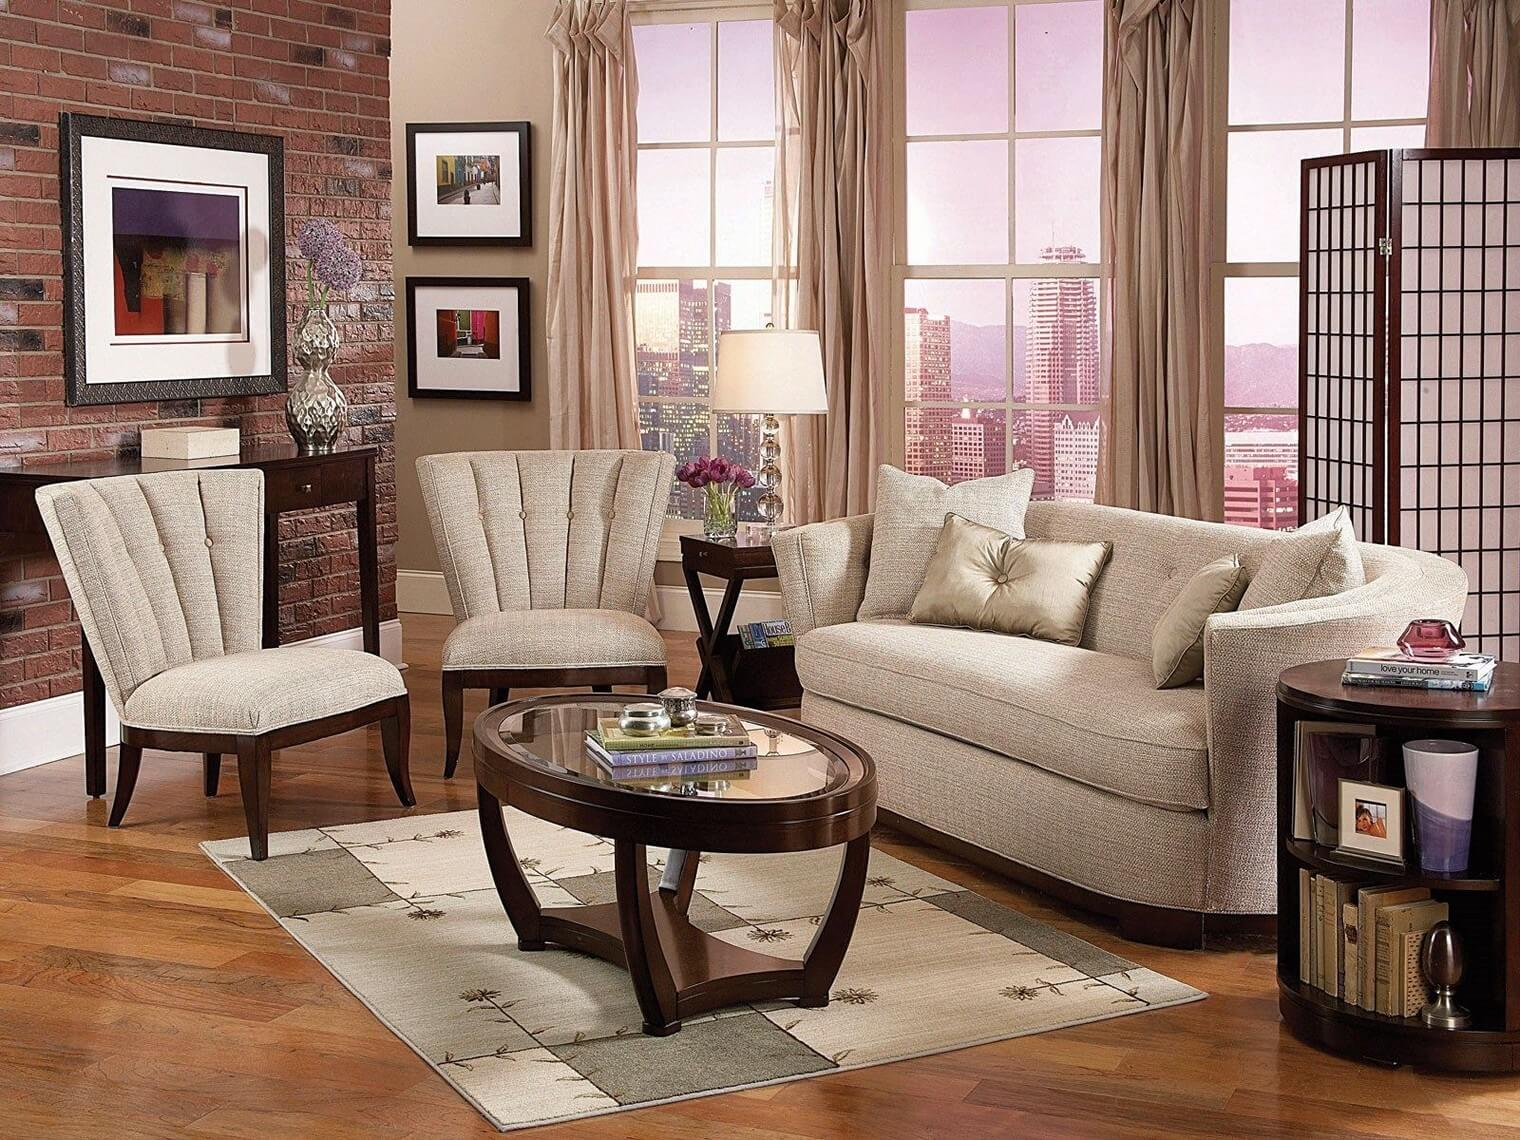 124 great living room ideas and designs photo gallery for Sofa and 2 chairs living room